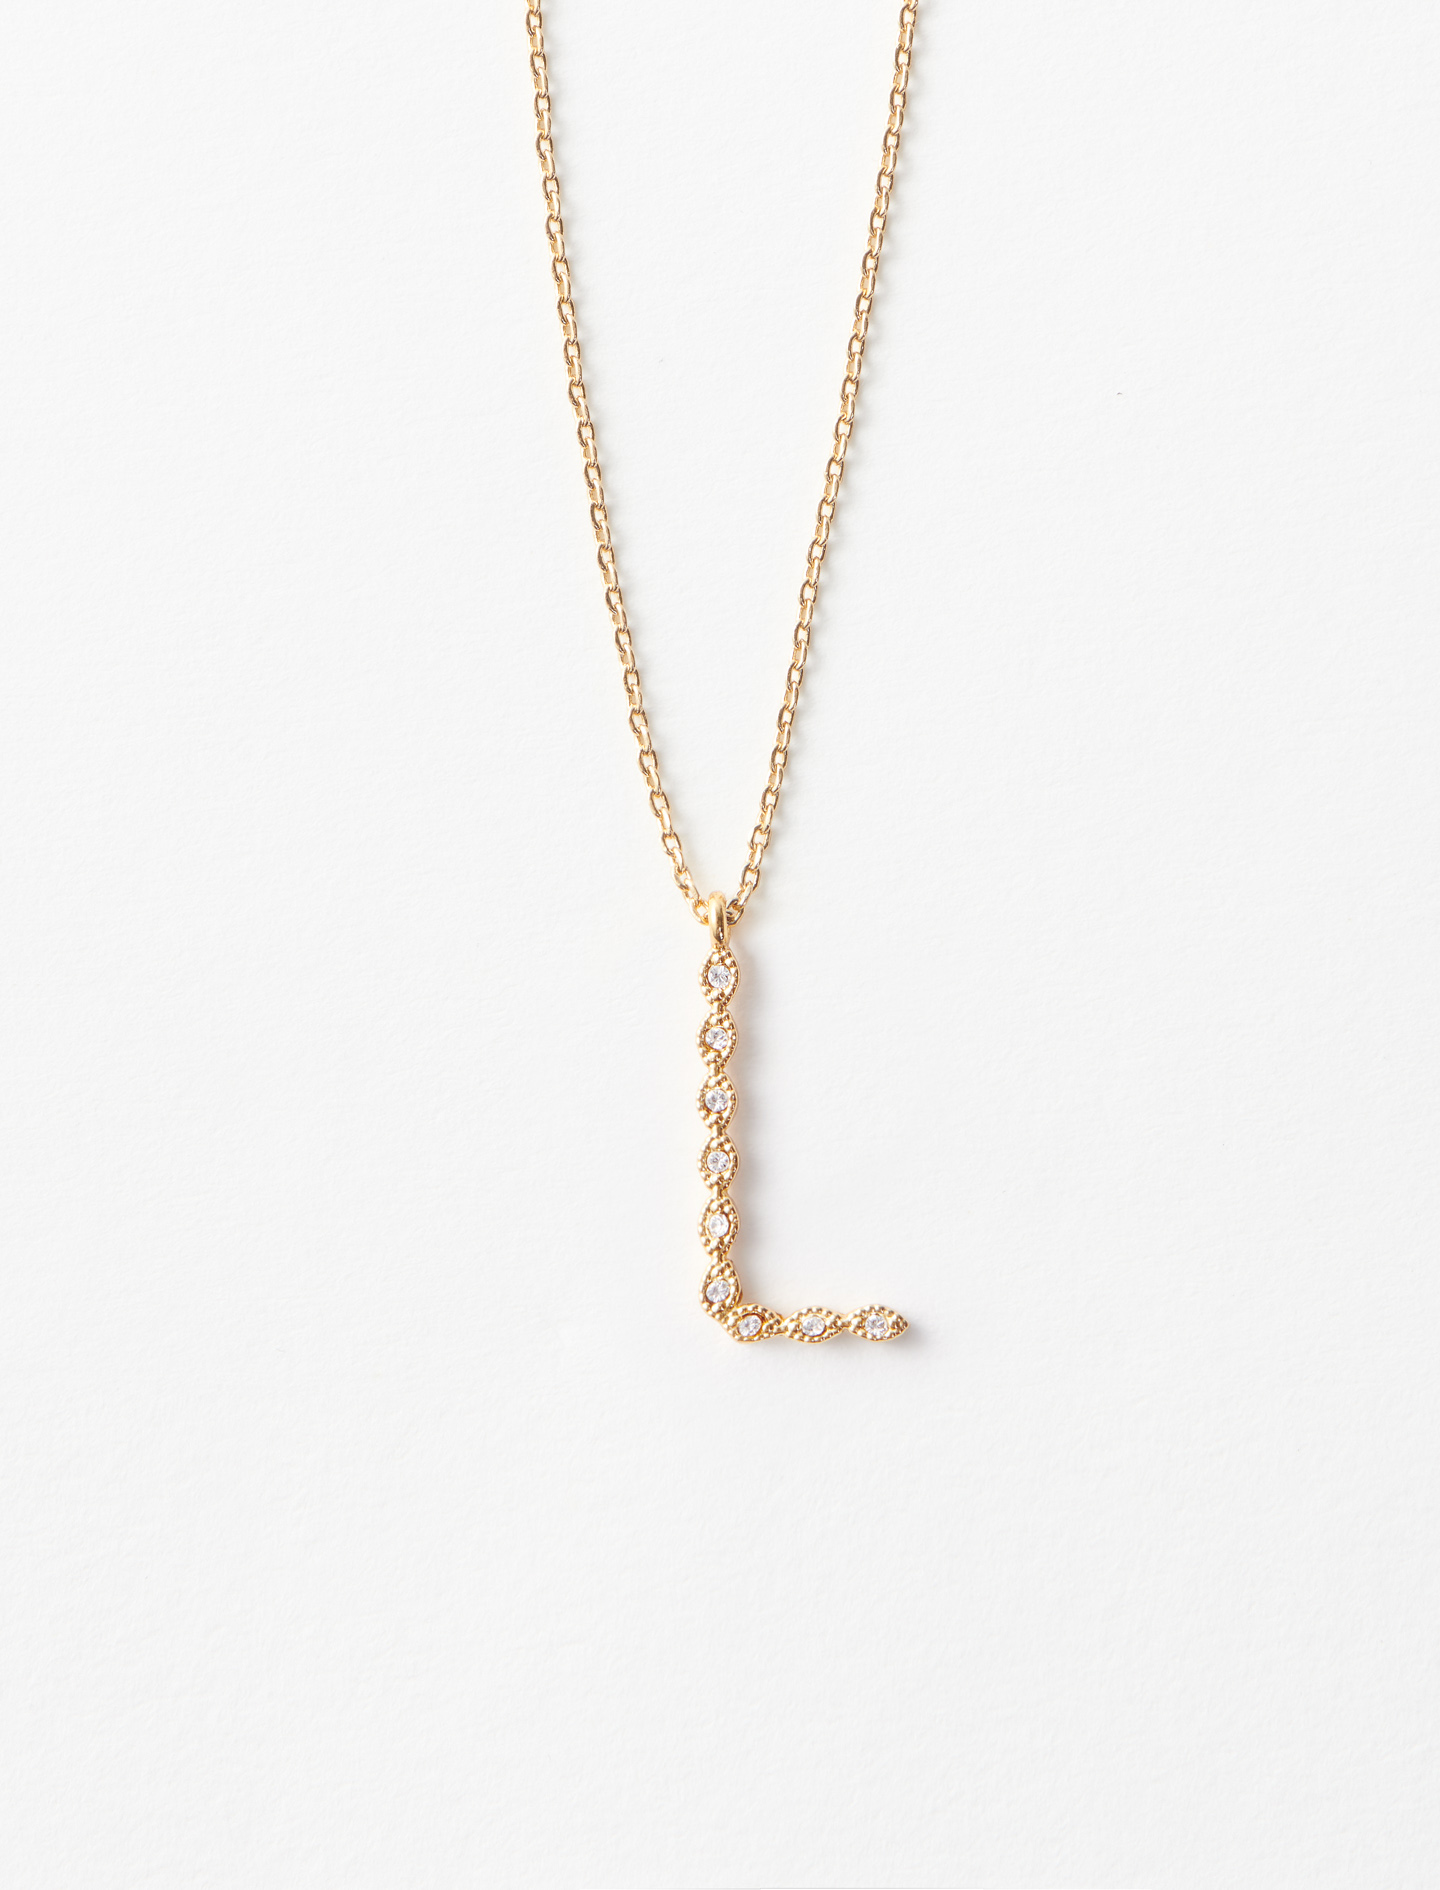 Rhinestone L necklace - Gold